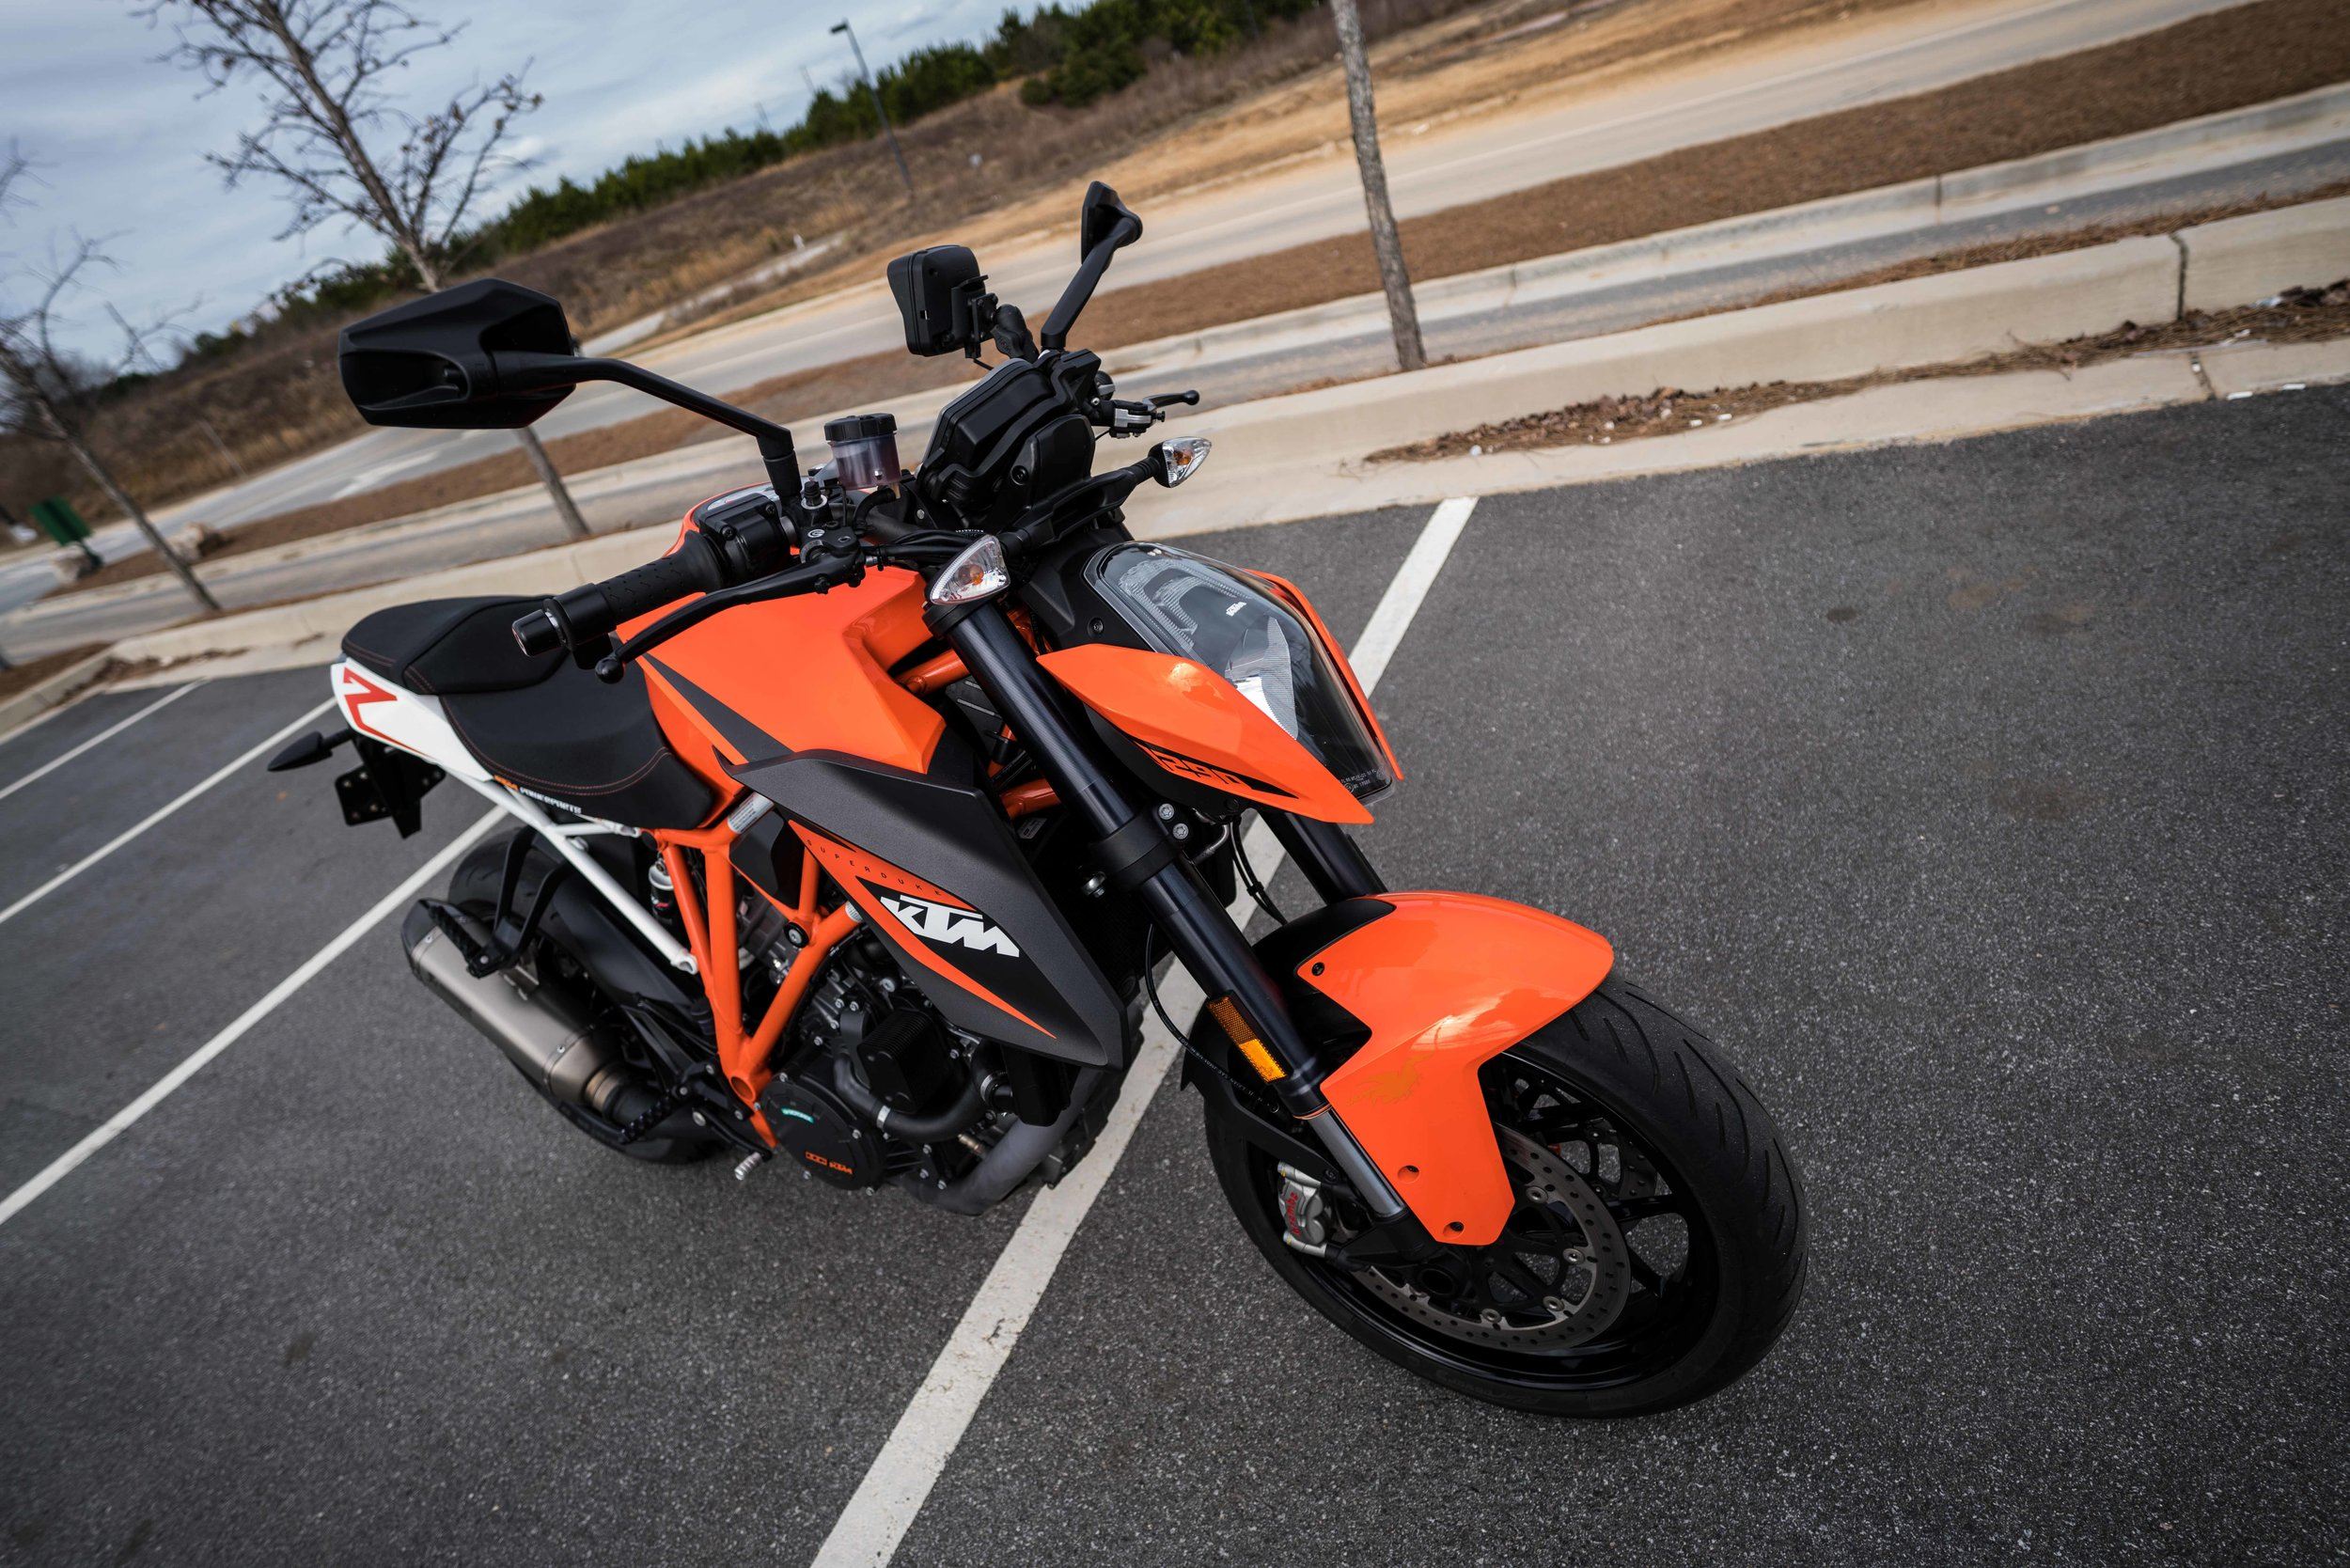 Superduke_FirstRide-8.jpg